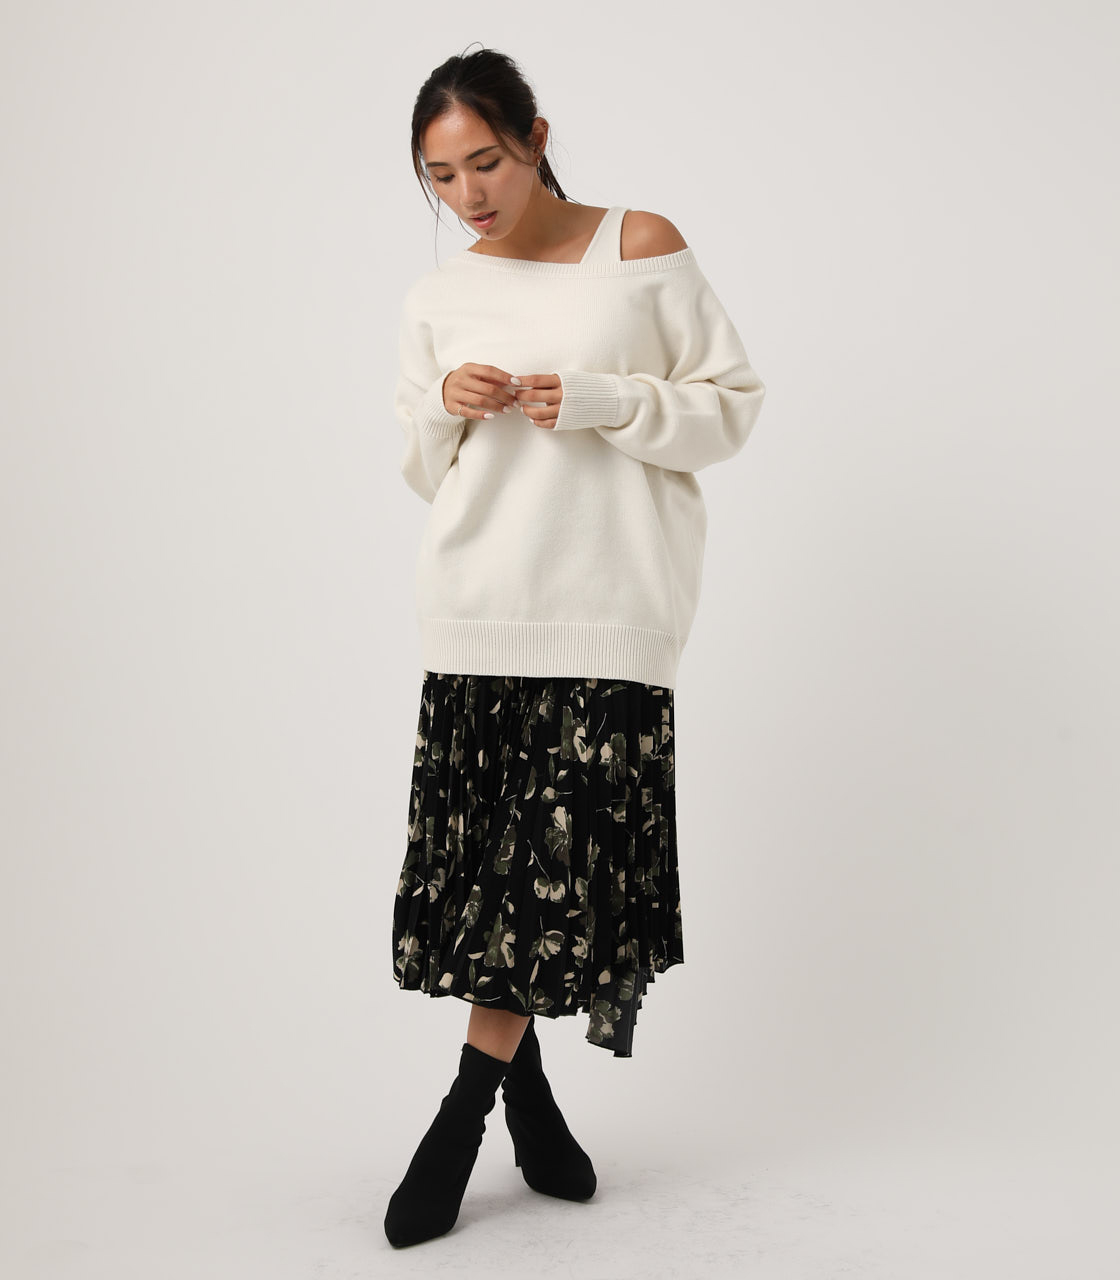 2WAY KNIT SET TOPS/2WAYニットセットトップス【MOOK#51掲載 90201】 詳細画像 O/WHT 3